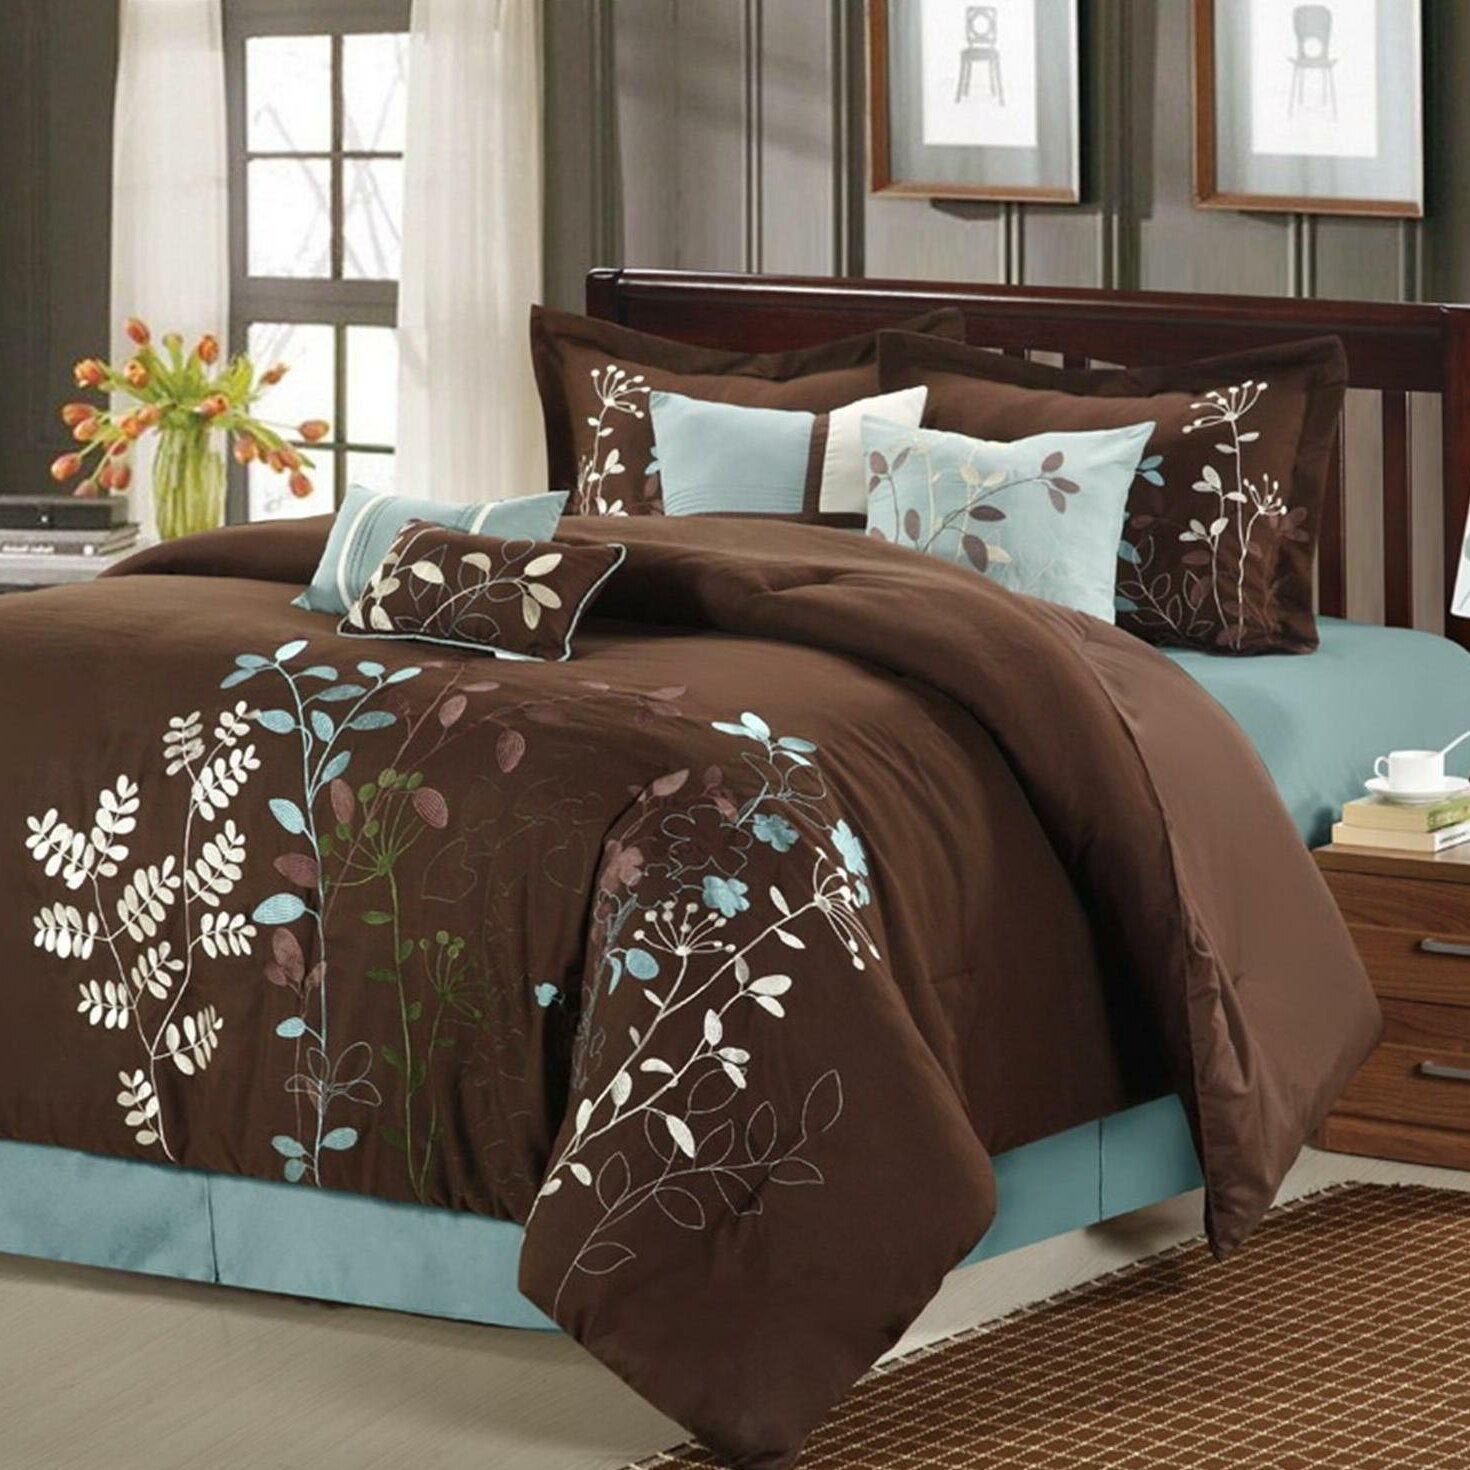 Teal Bedroom Decor Teal And Brown Bedding